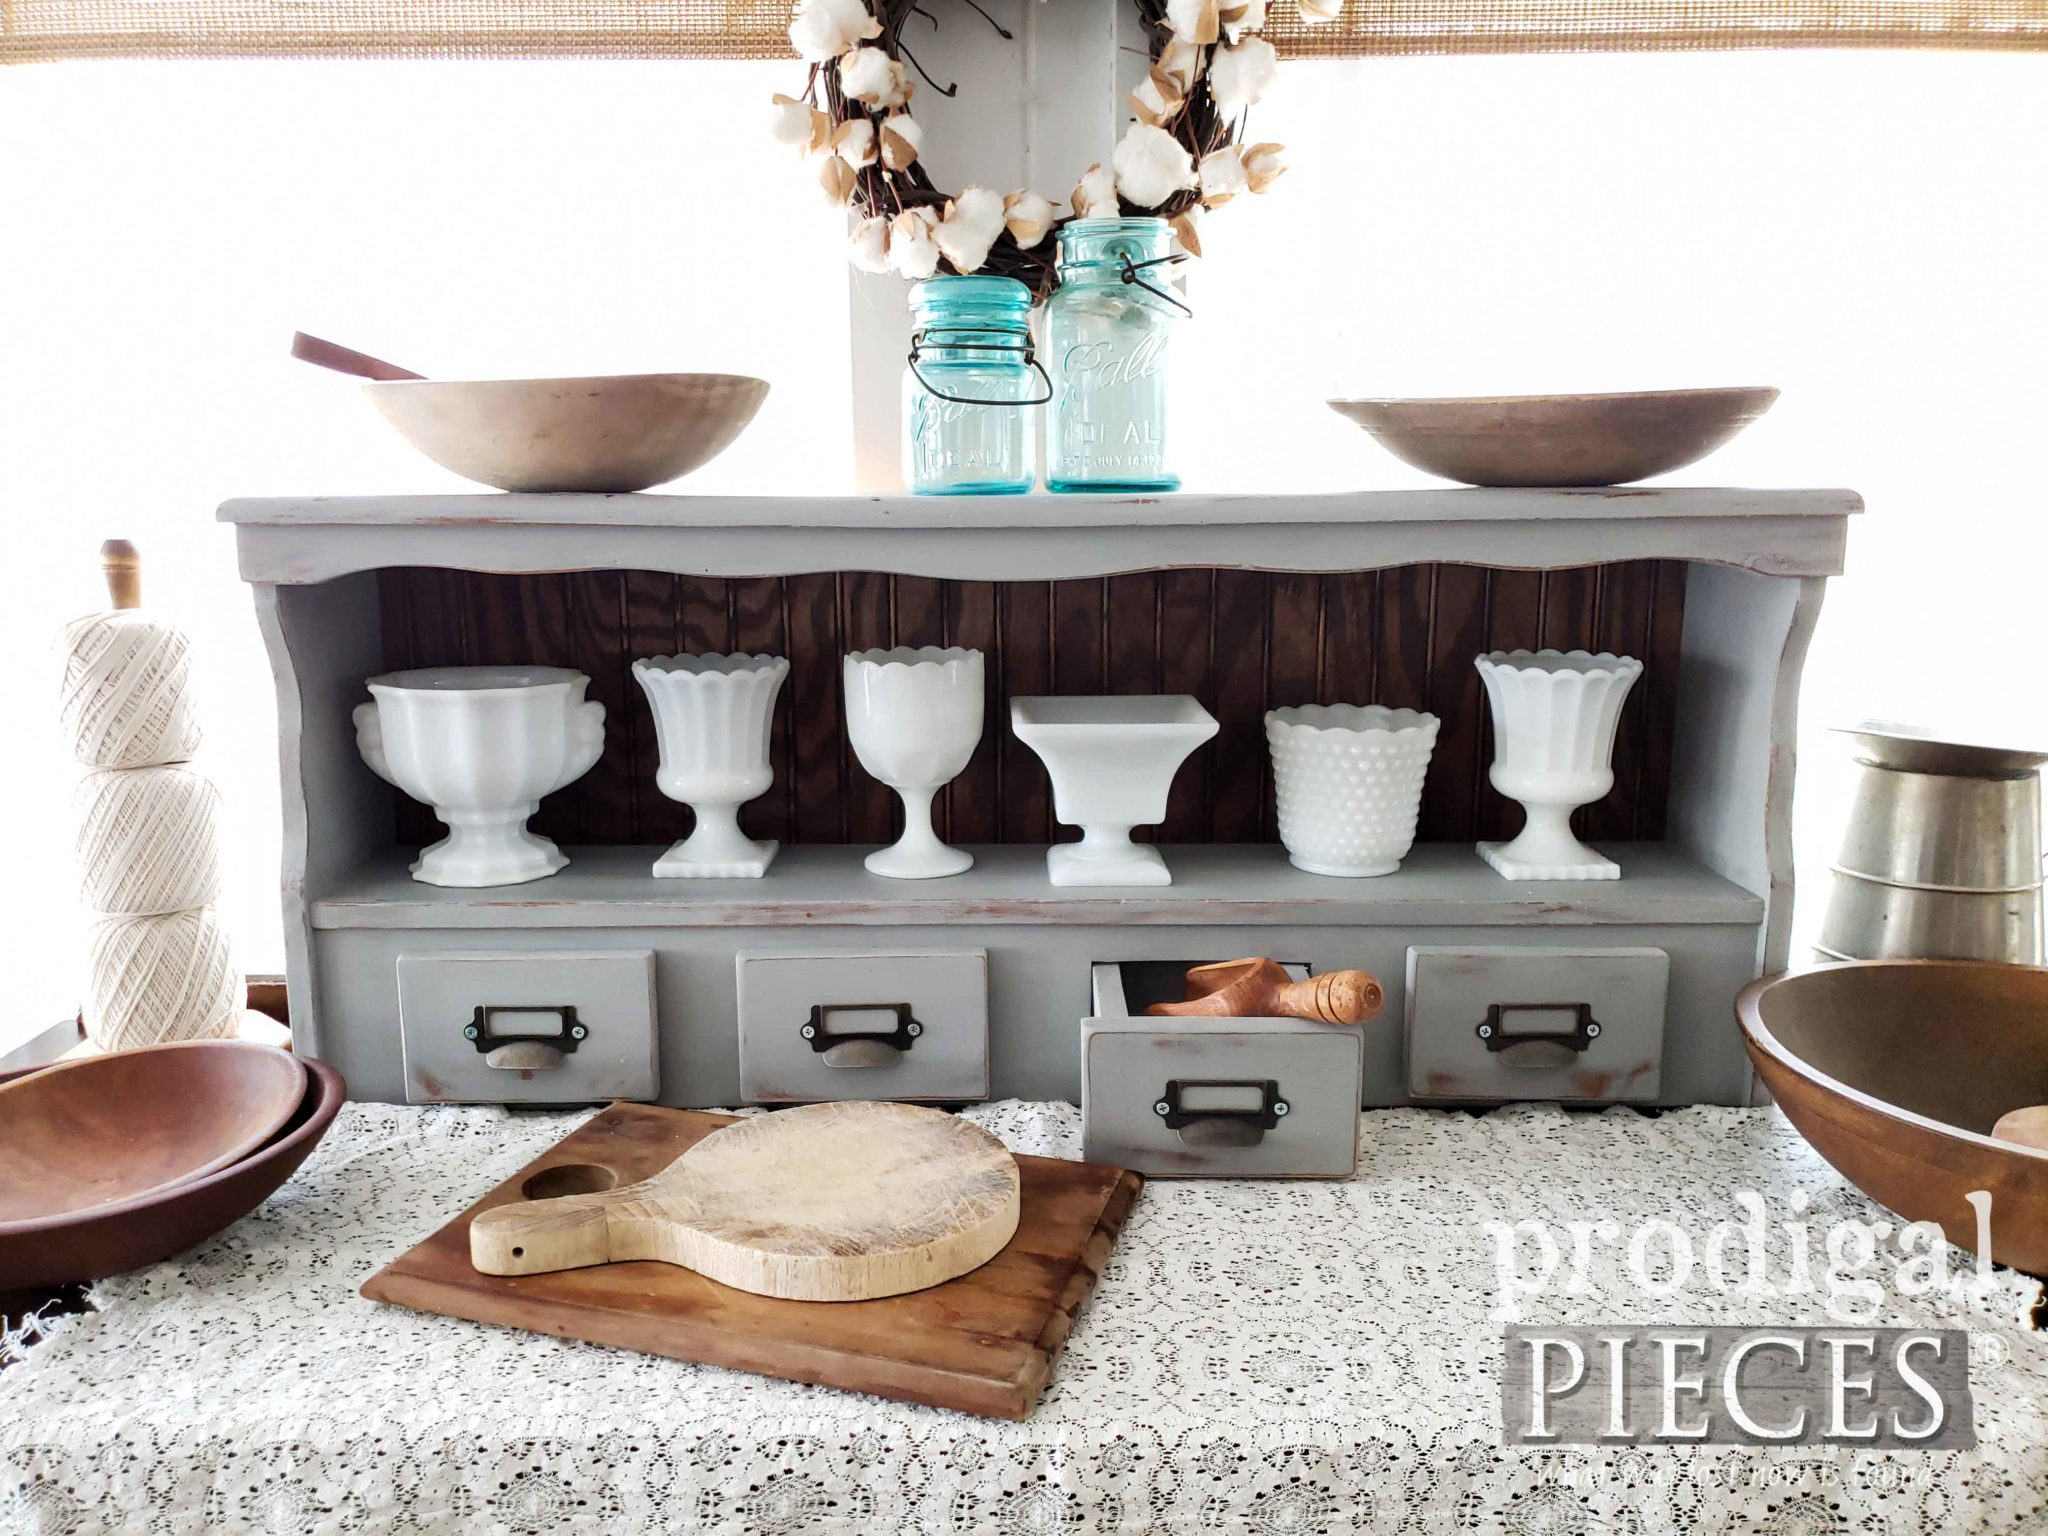 Upcycled Bookcase Headboard Hutch Created with Cubby Drawers by Larissa of Prodigal Pieces | DIY tutorial at prodigalpieces.com | #prodigalpieces #diy #home #handmade #homedecor #furniture #farmhouse